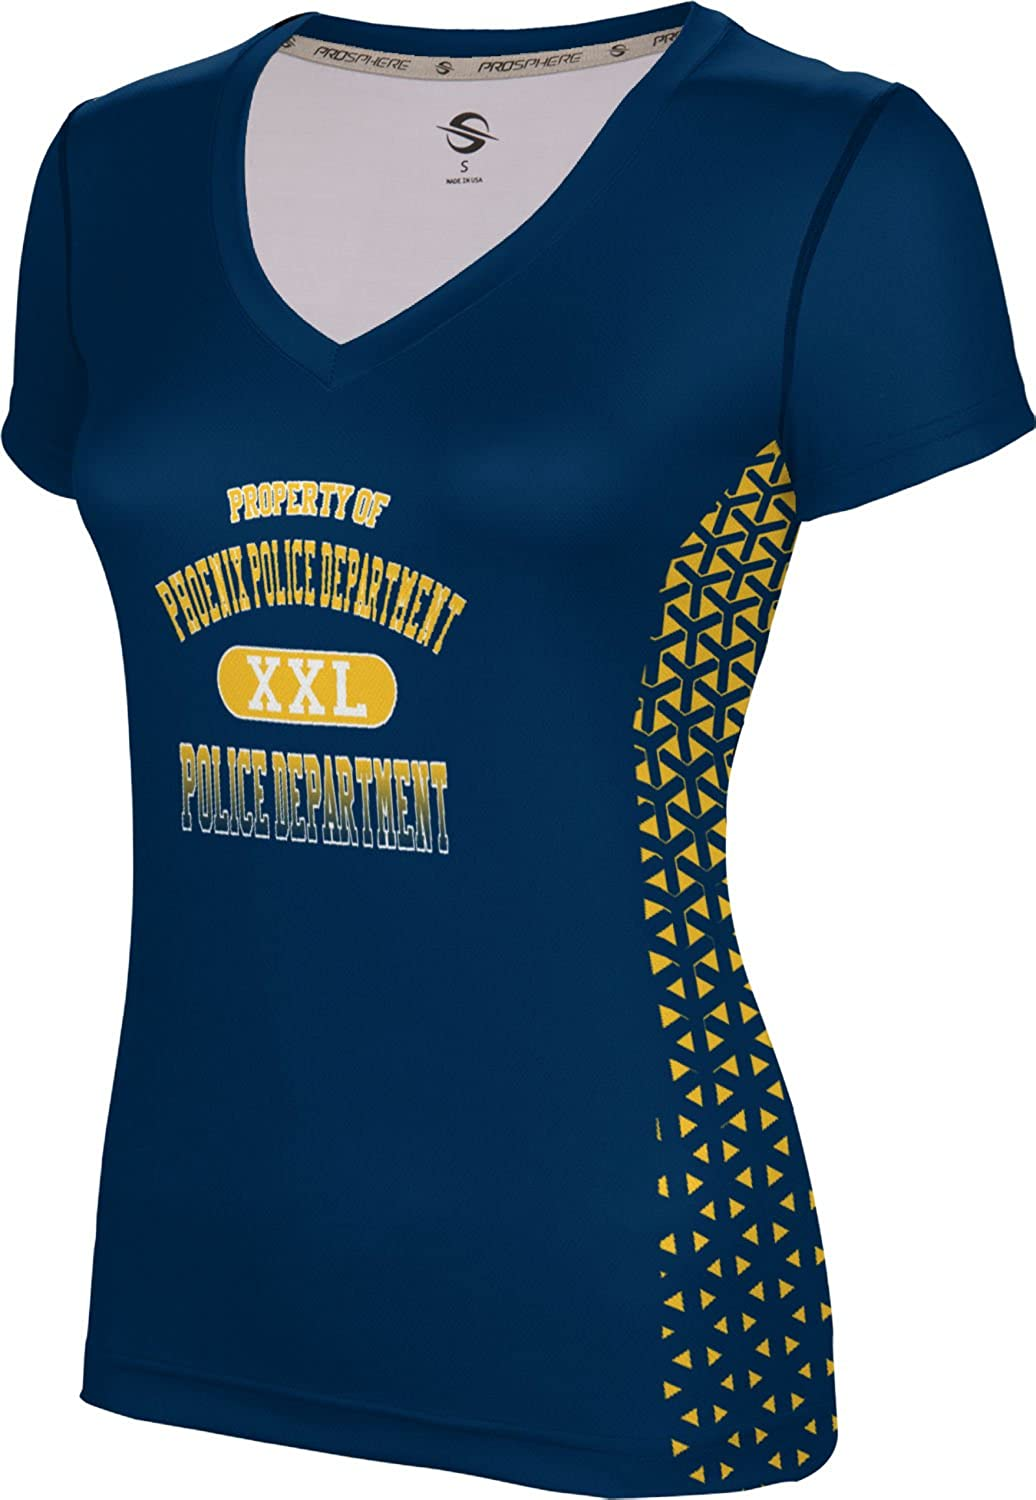 ProSphere Women's Phoenix Police Department Geometric SL V-Neck Training Tee